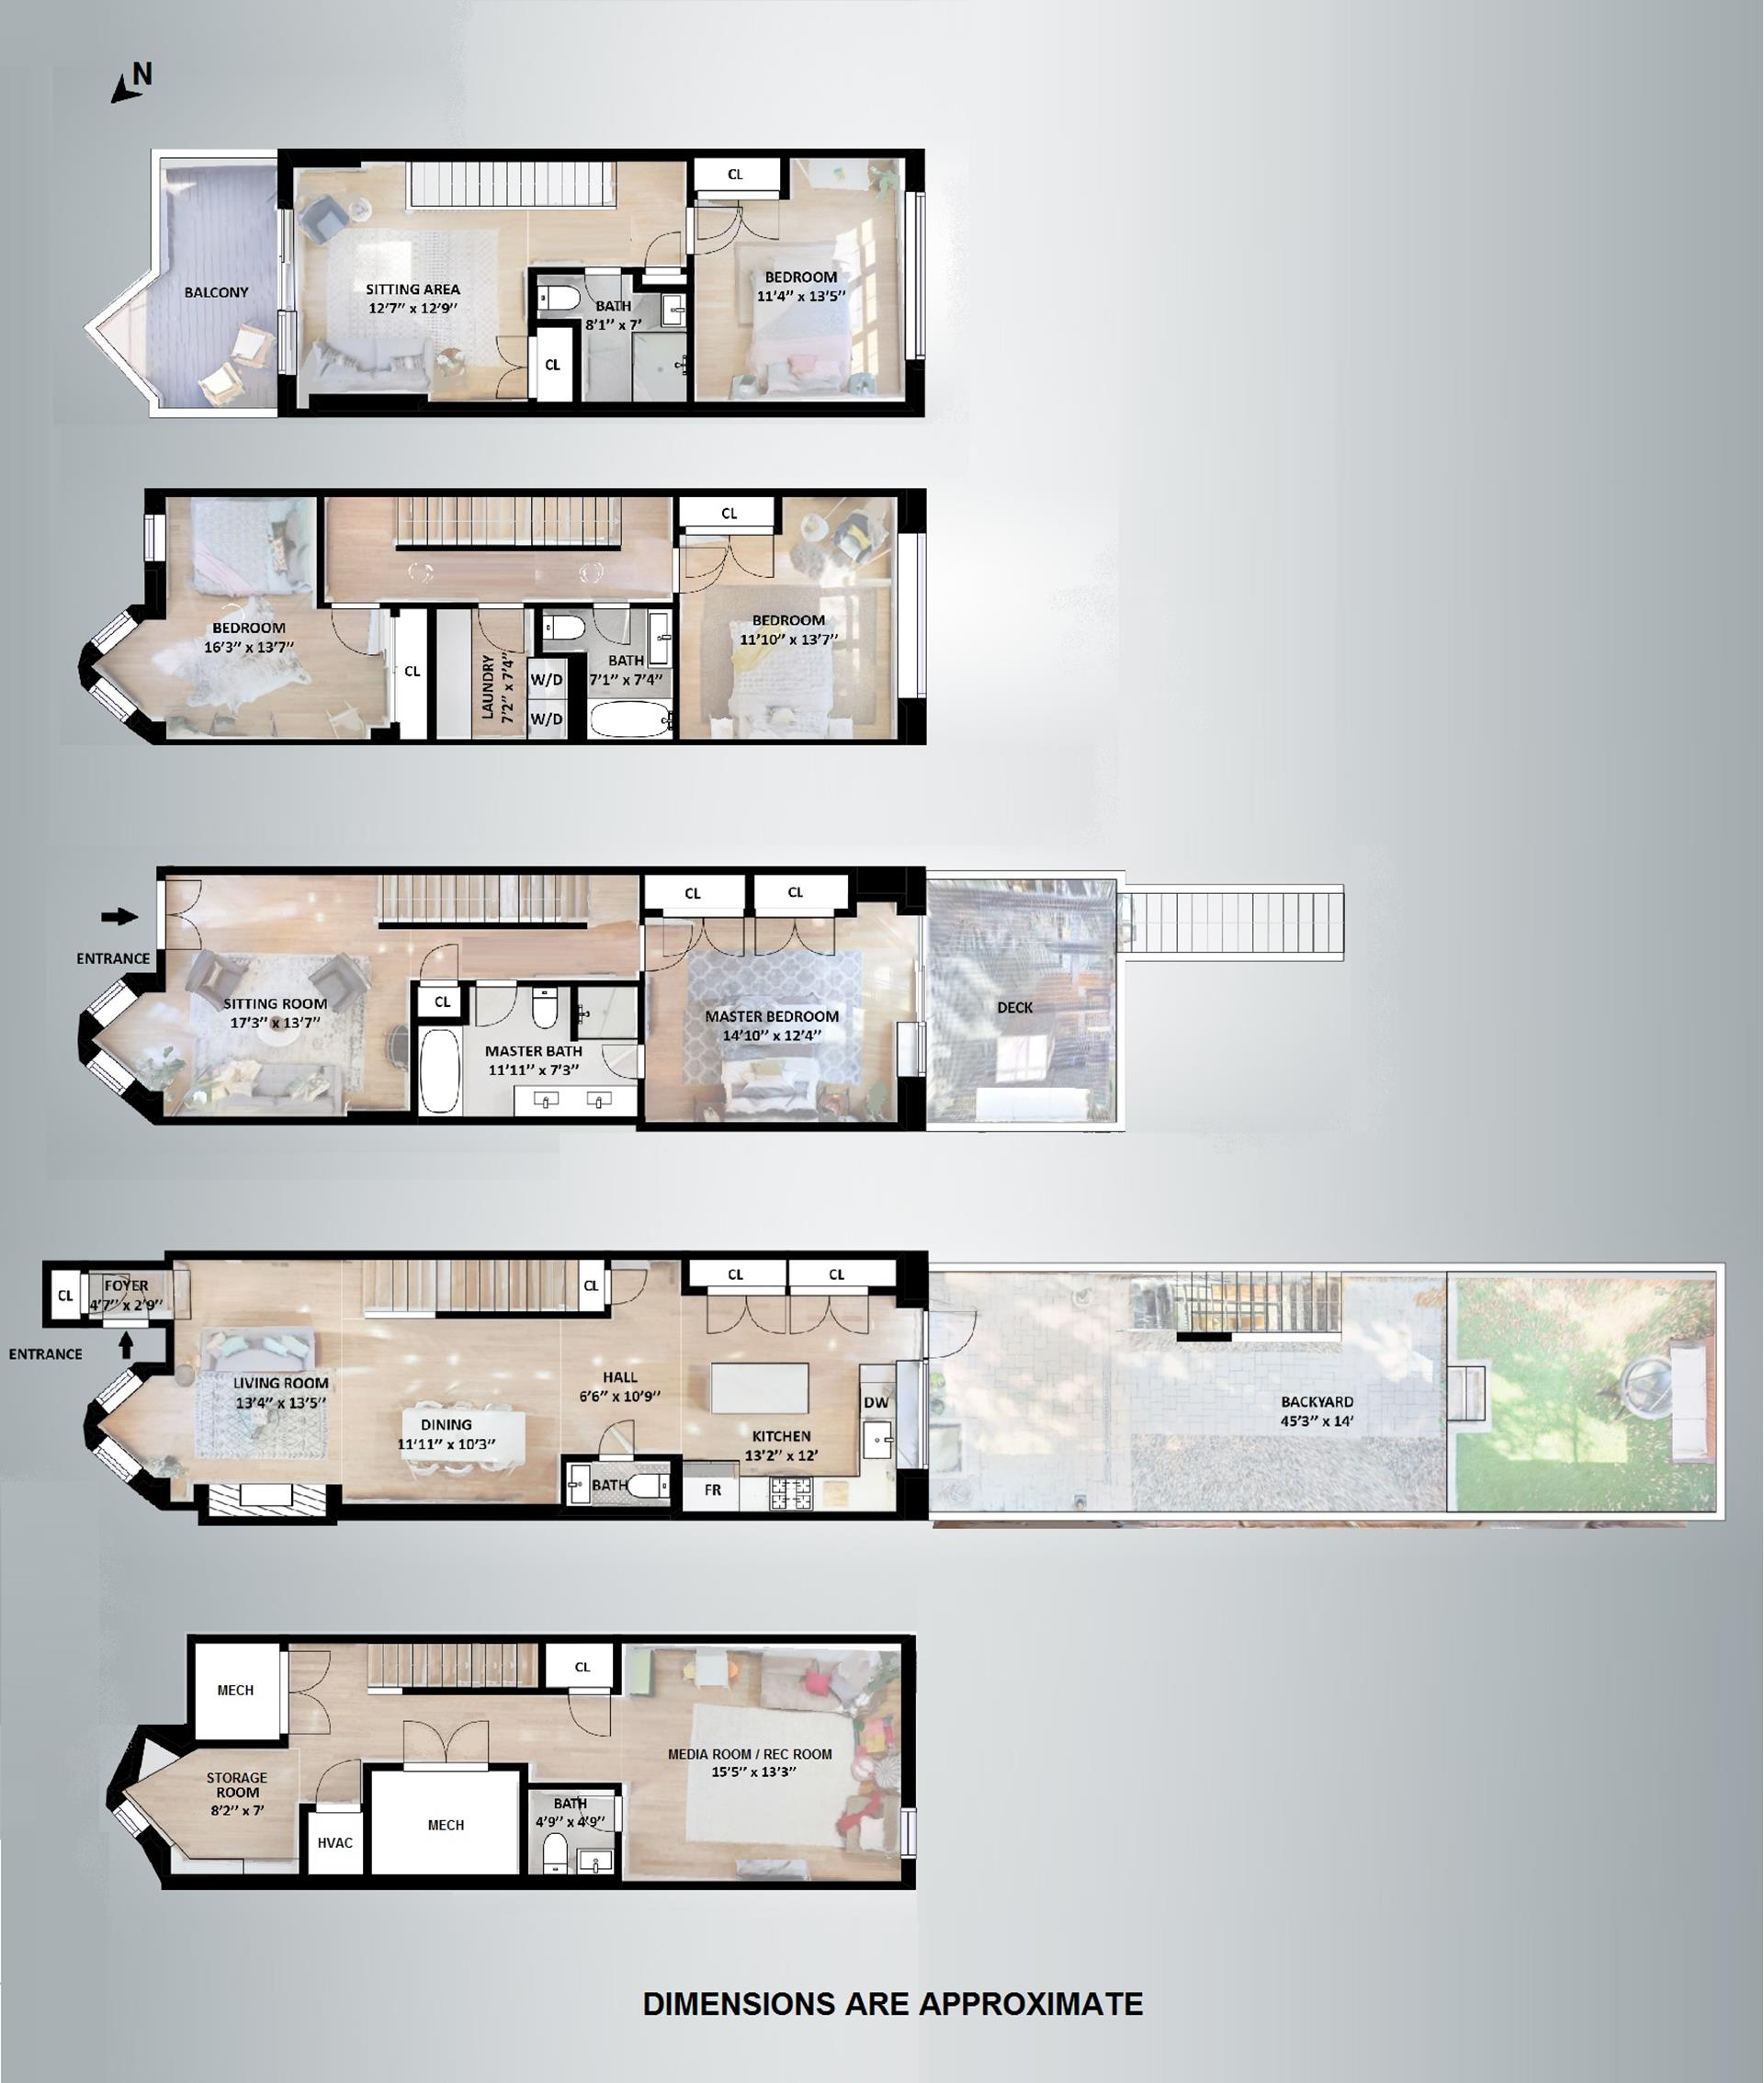 Floor plan of 378A 5th St - Park Slope, New York